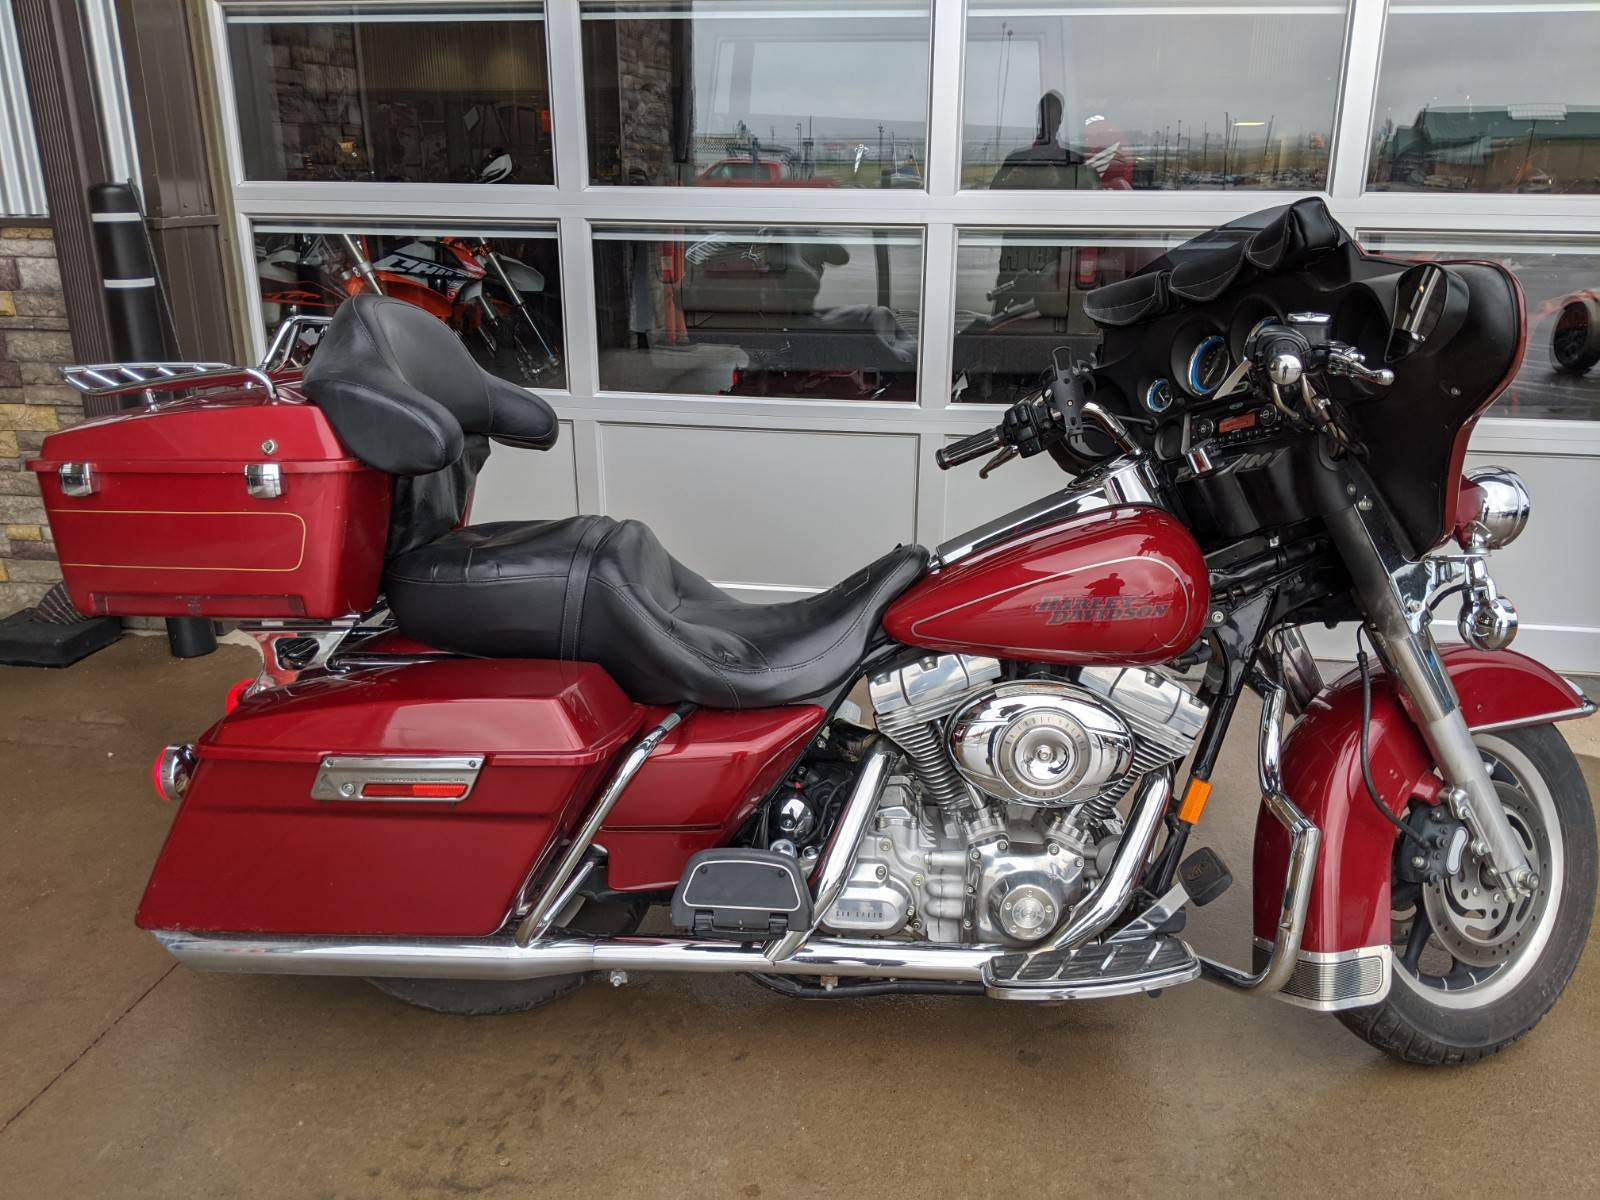 2007 Harley-Davidson FLHT Electra Glide® Standard in Rapid City, South Dakota - Photo 1